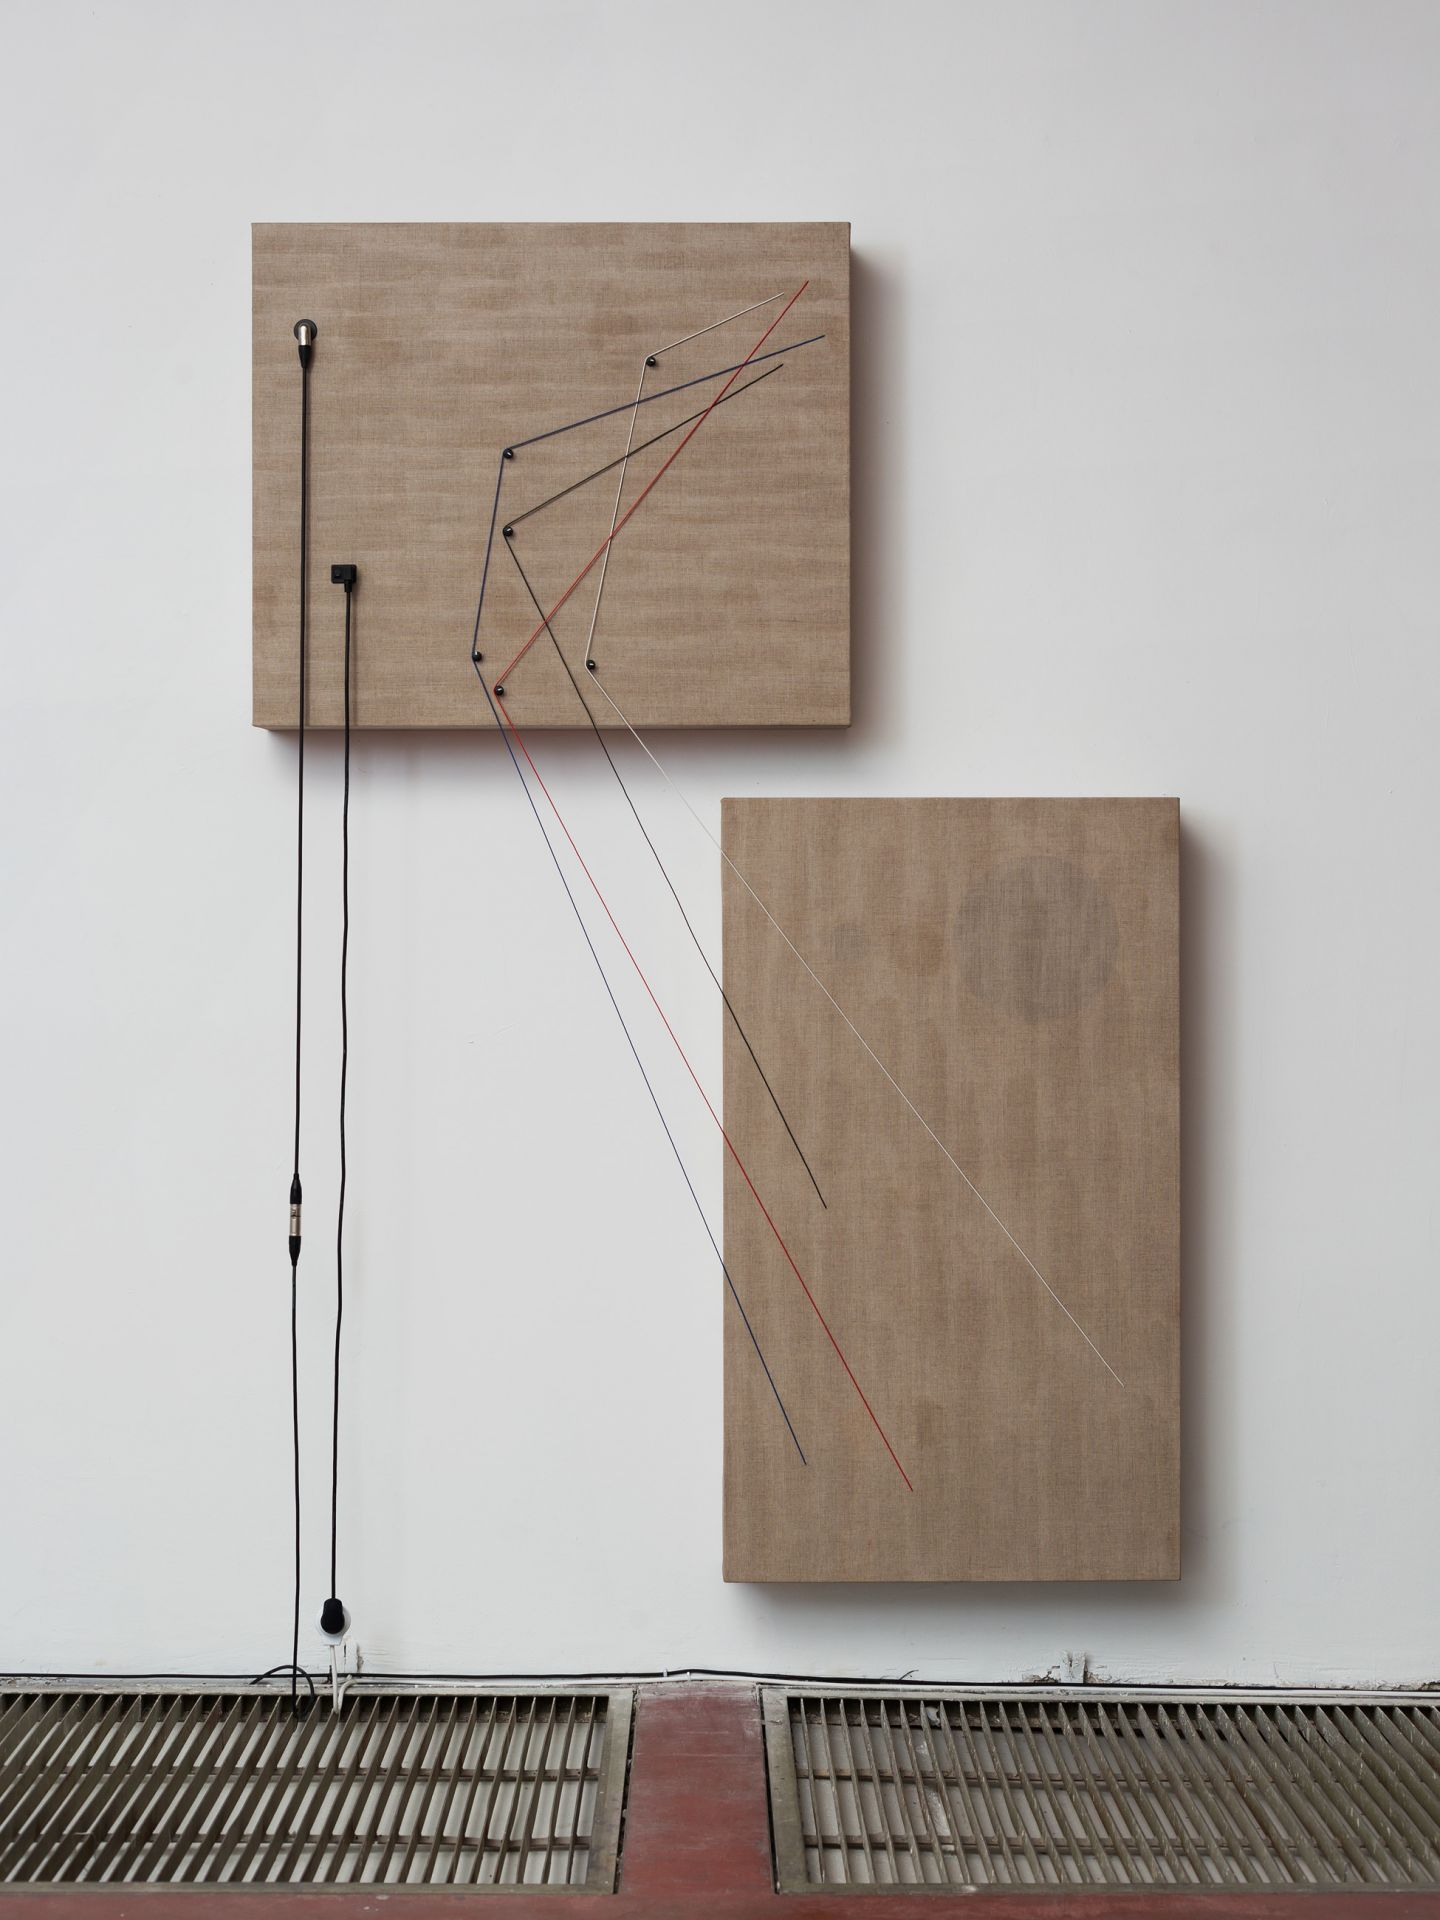 """Transition, 2016, Wood, canvas, electronics, cables, knobs, speakers, 87 4/5 × 59 4/5 × 6 1/2"""""""